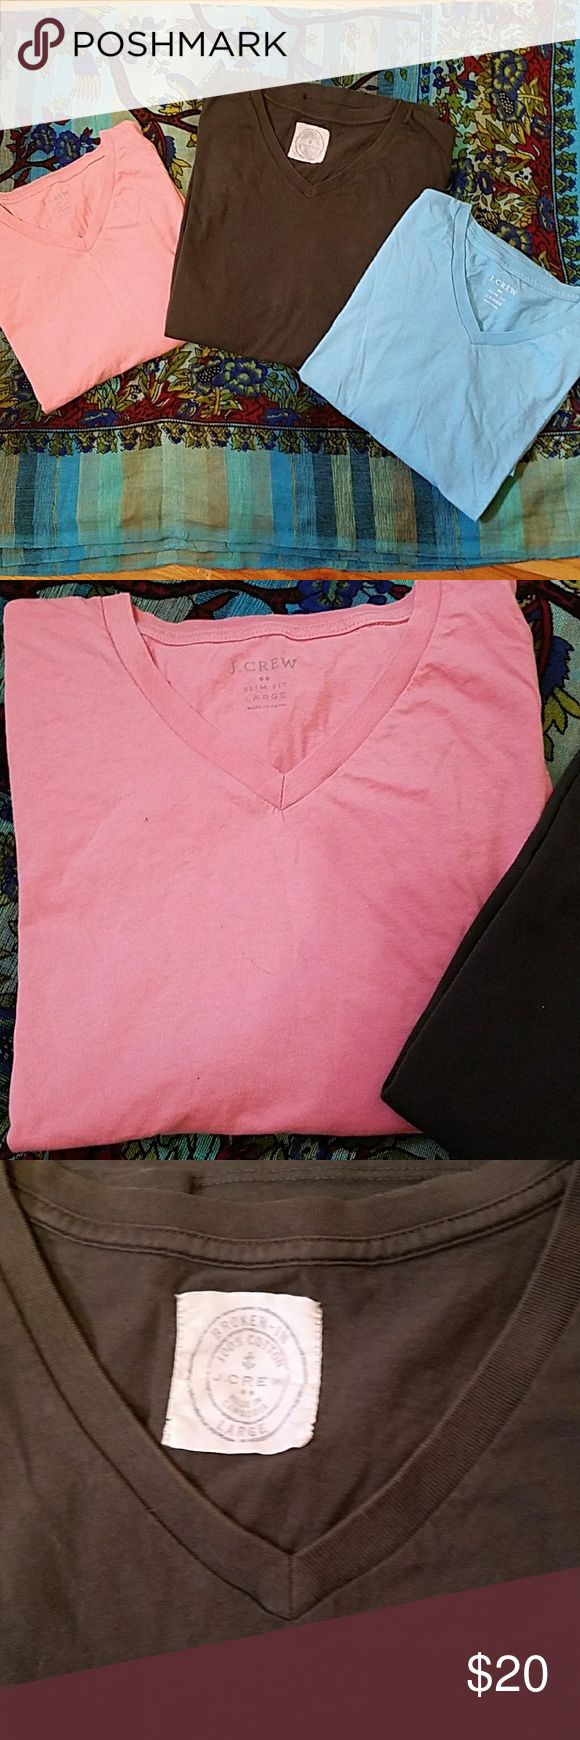 J CREW Short sleeve Tees Set of three J Crew Tee shirts for one great price!  Broken-in style.  In great condition. J. Crew Shirts Tees - Short Sleeve